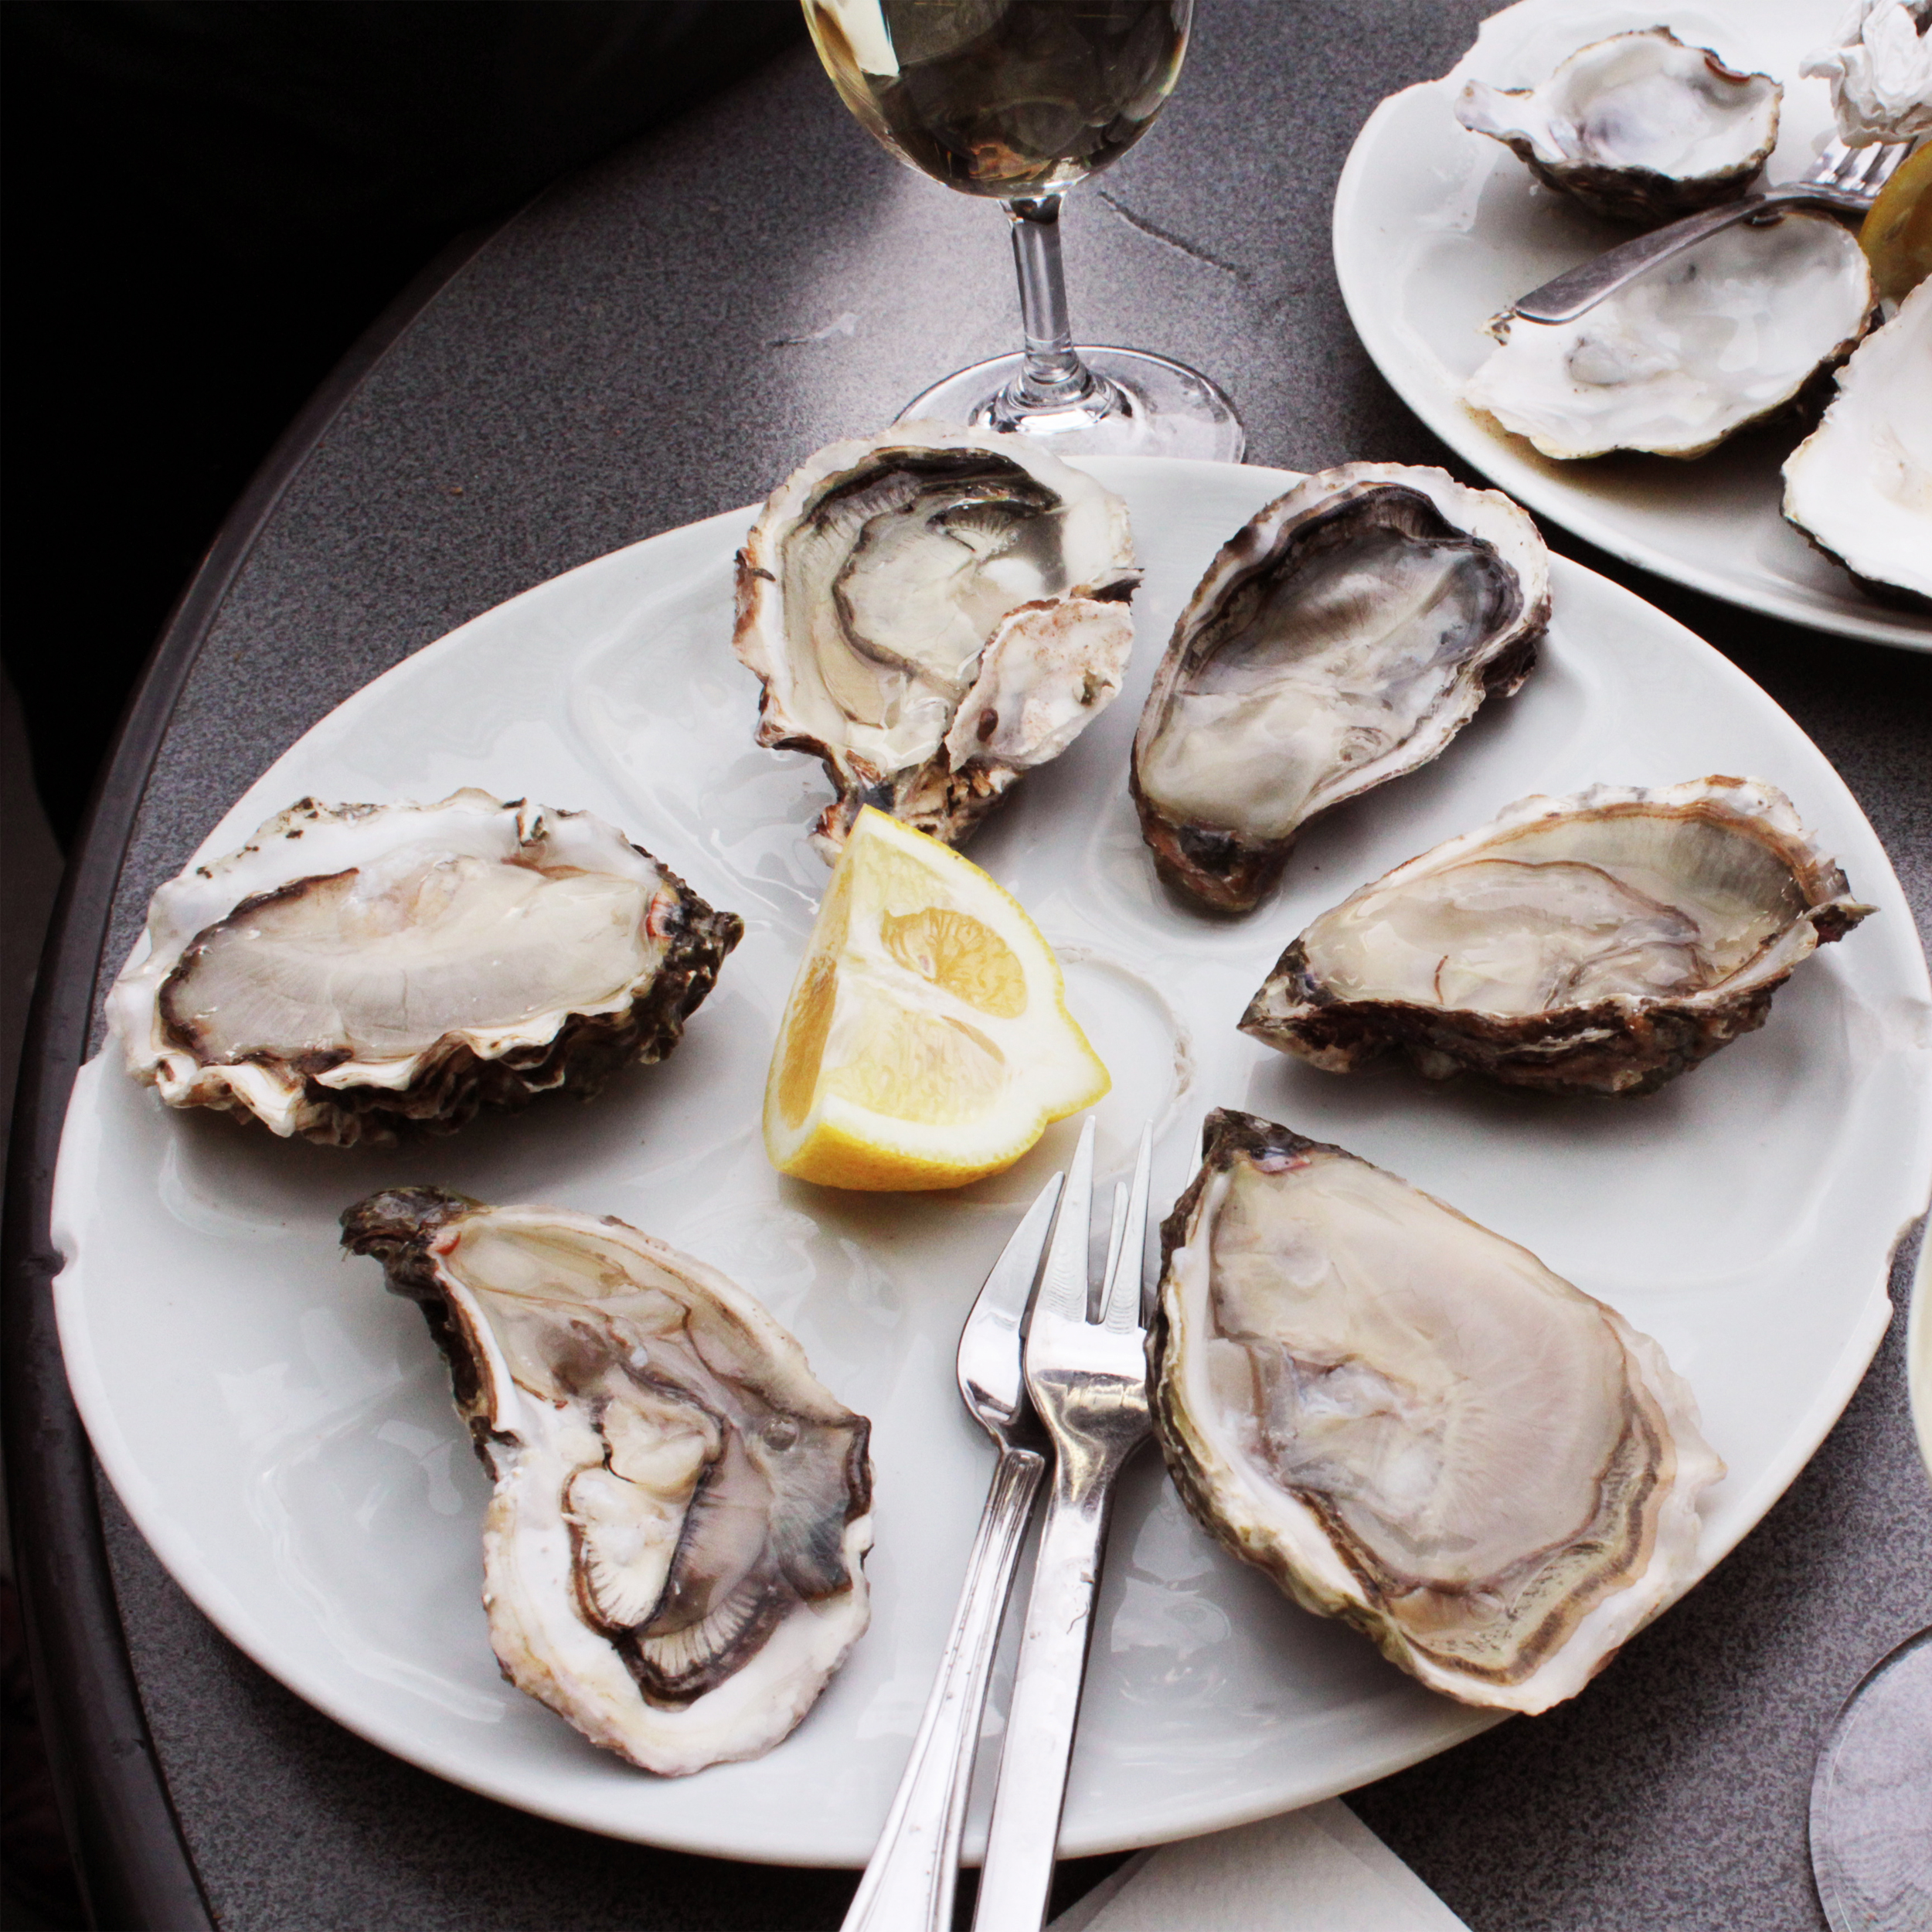 THE OYSTER CRAZE IS REAL